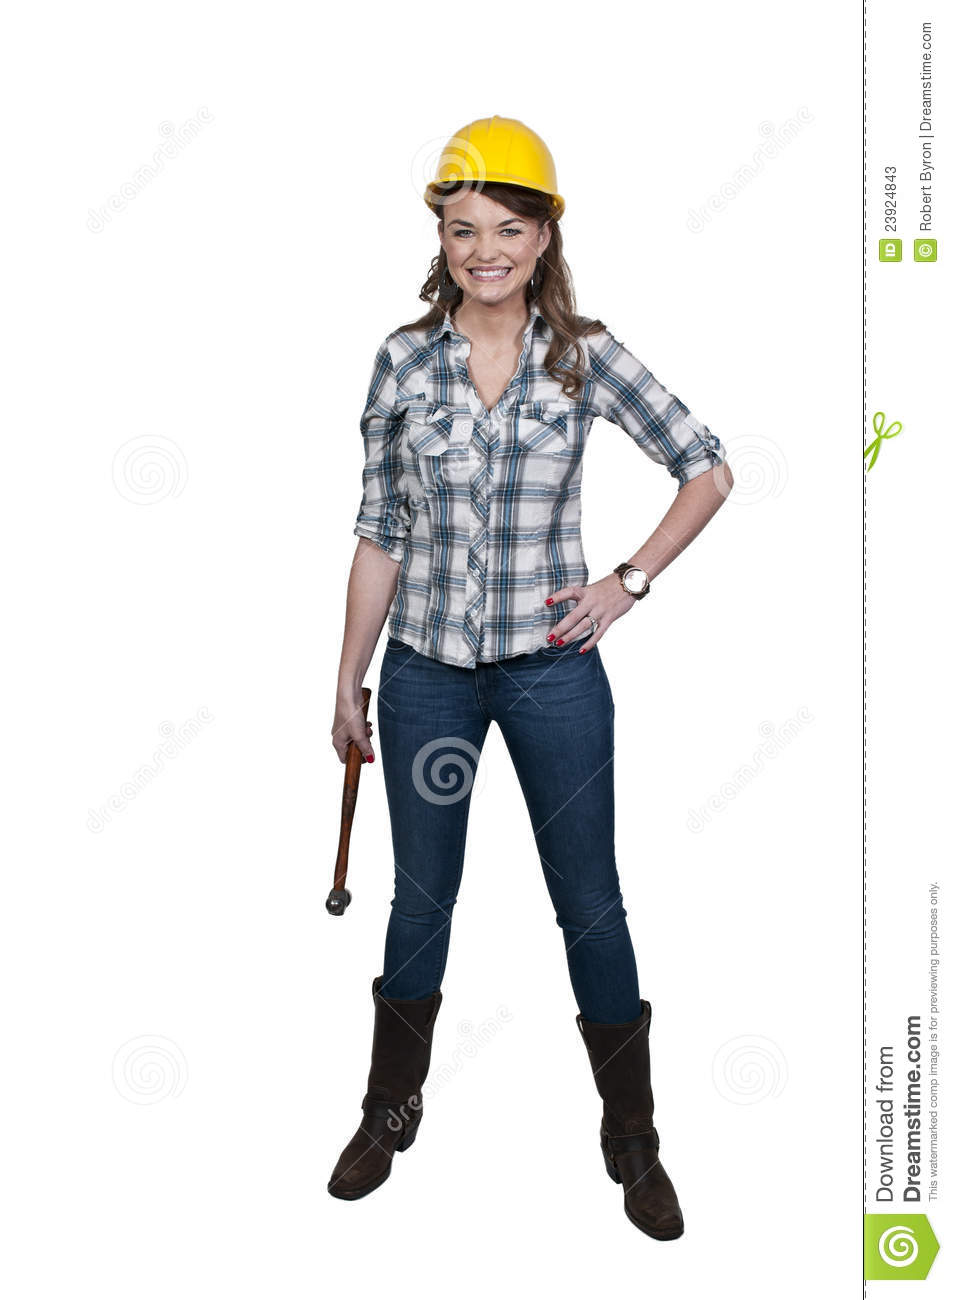 All female construction workers are lesbian 3